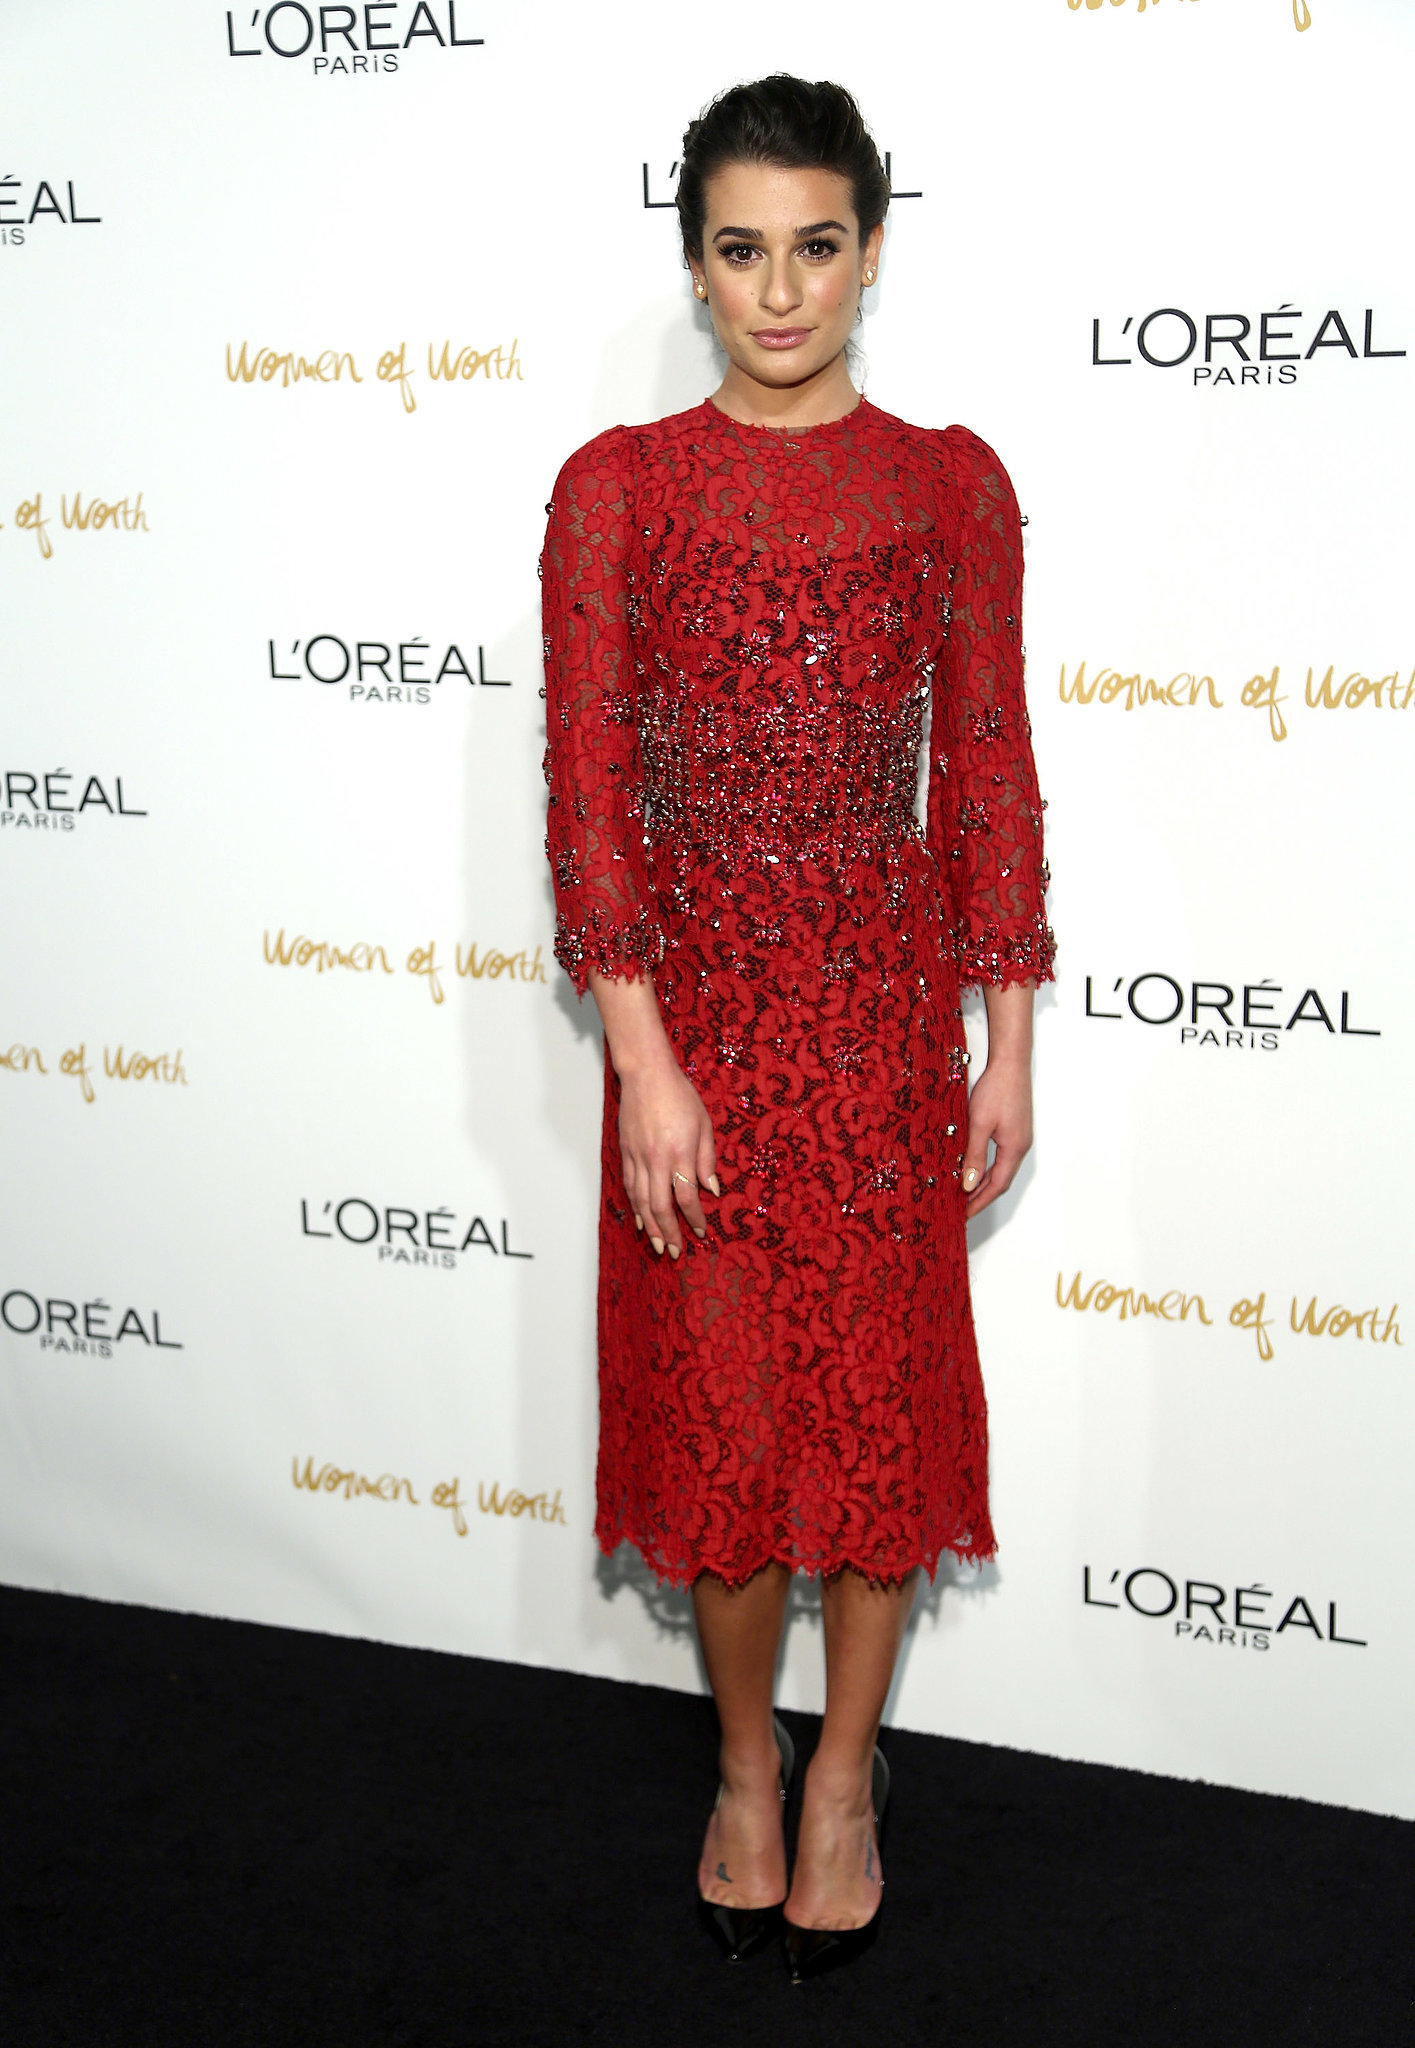 Hello, gorgeous! Lea Michele partied the night away in a decorated lace dress by Dolce & Gabbana at the Women of Worth event in December 2013. Where to Wea